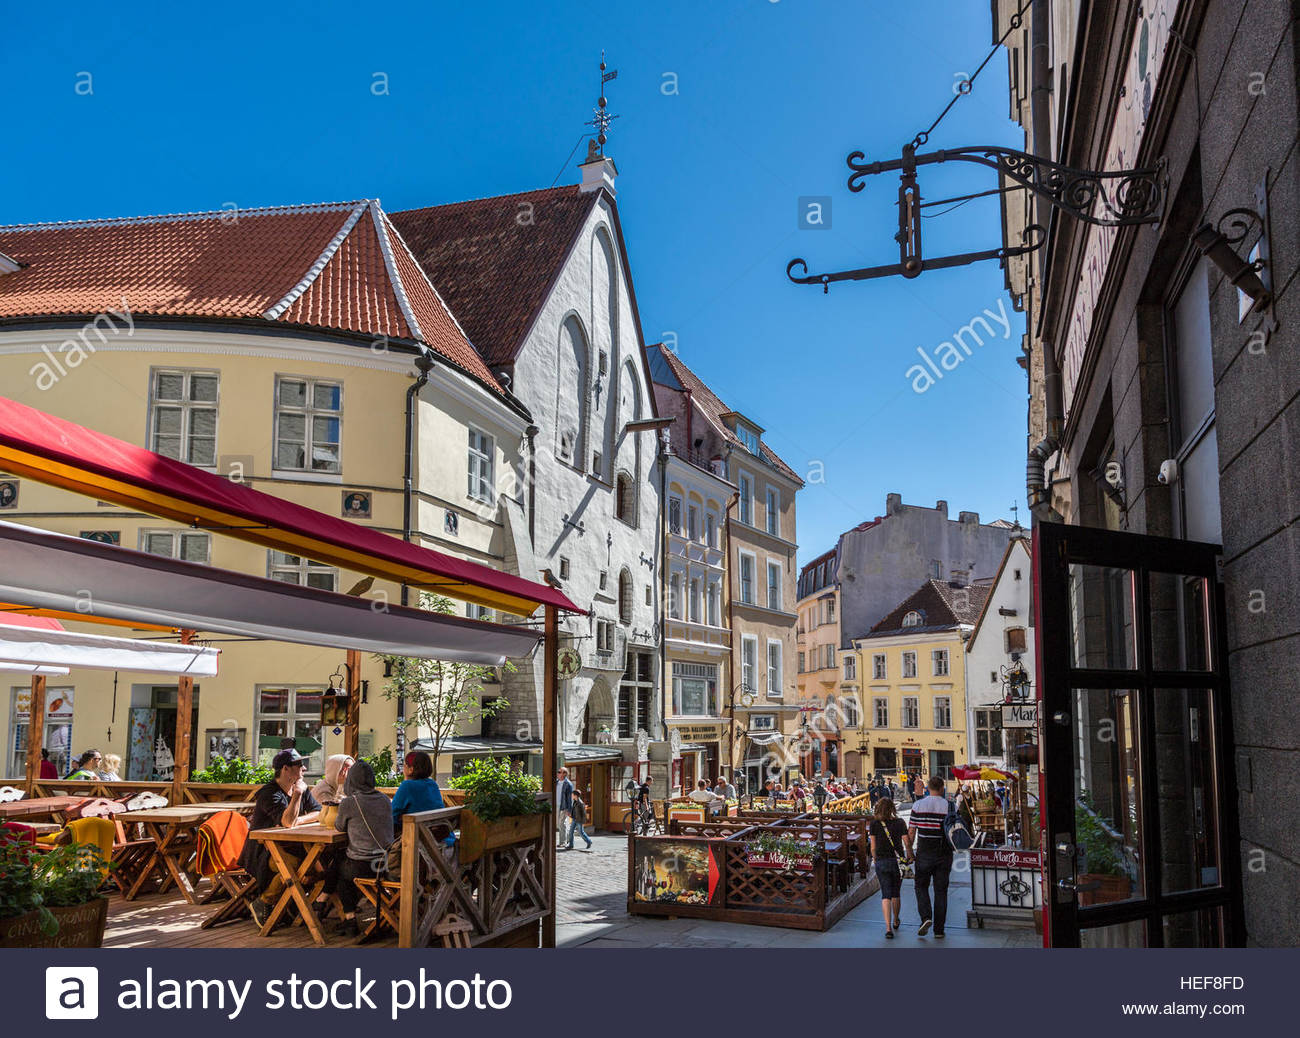 Tallinn old town, street view - Stock Image